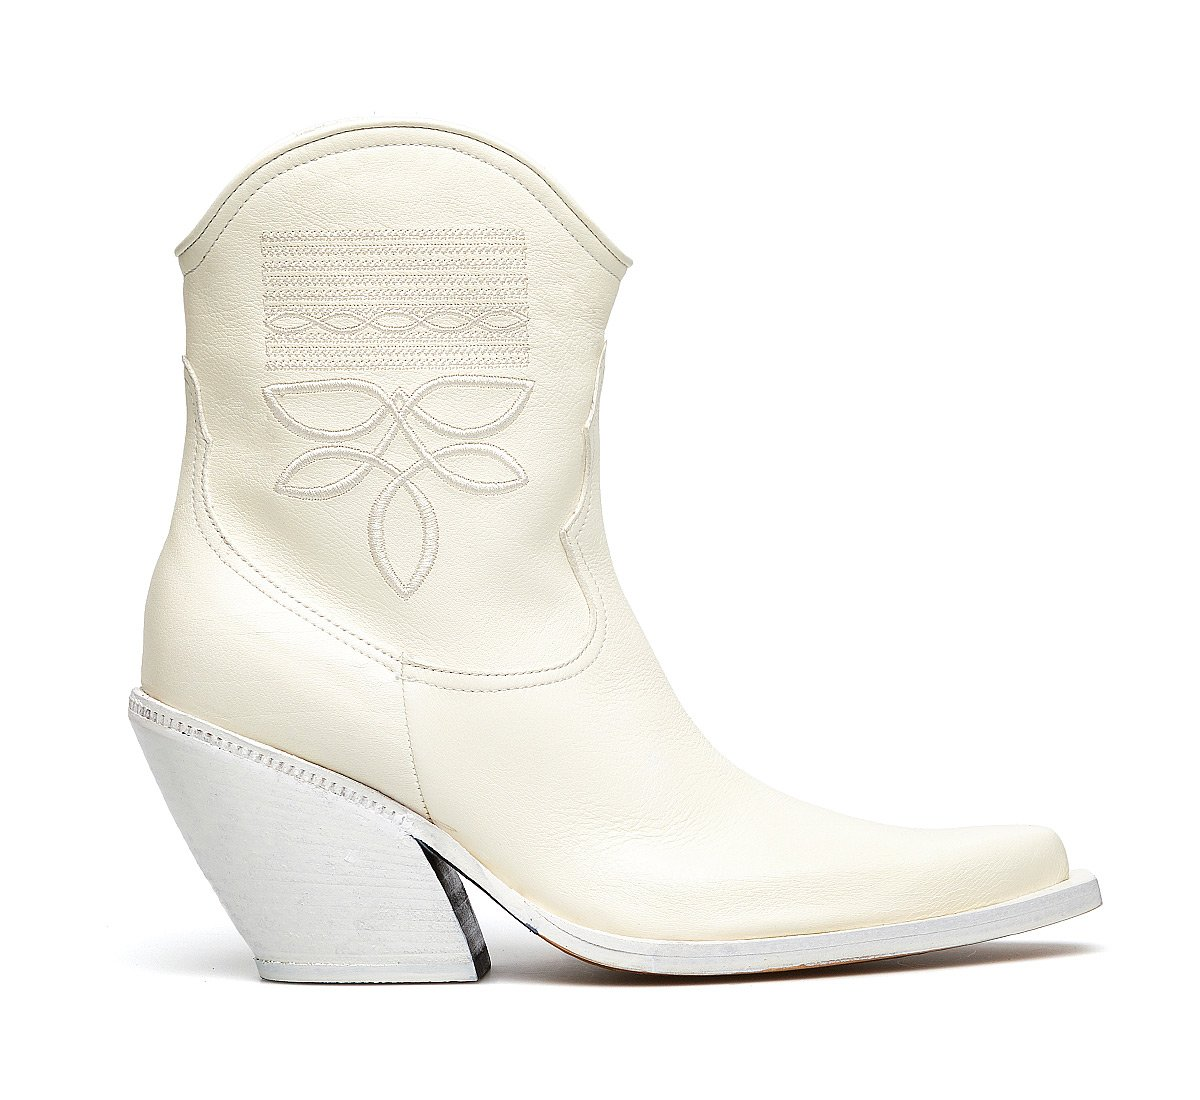 All-white Barracuda cowboy boots